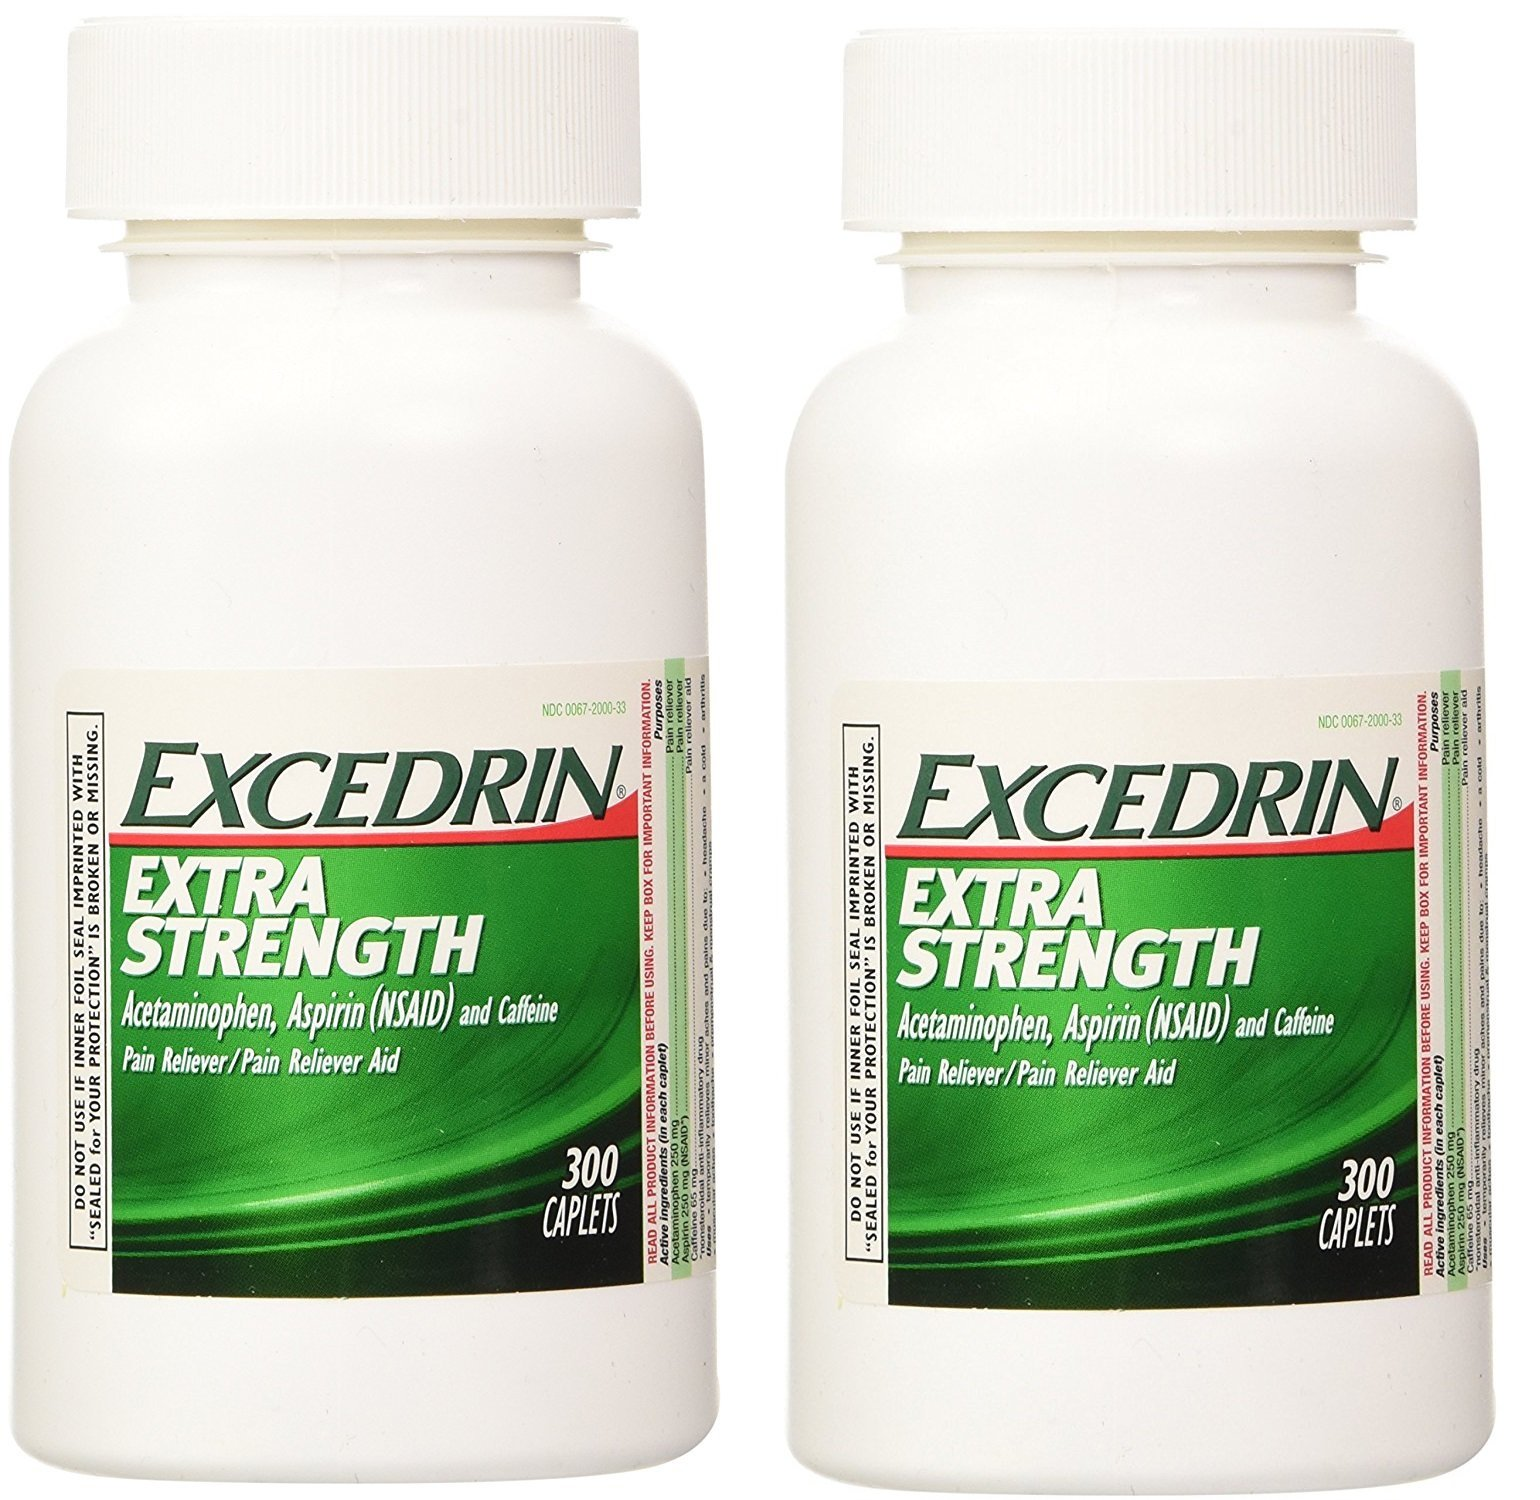 Excedrin Extra Strength Caplets, 300 Count (2 Pack) by Excedrin